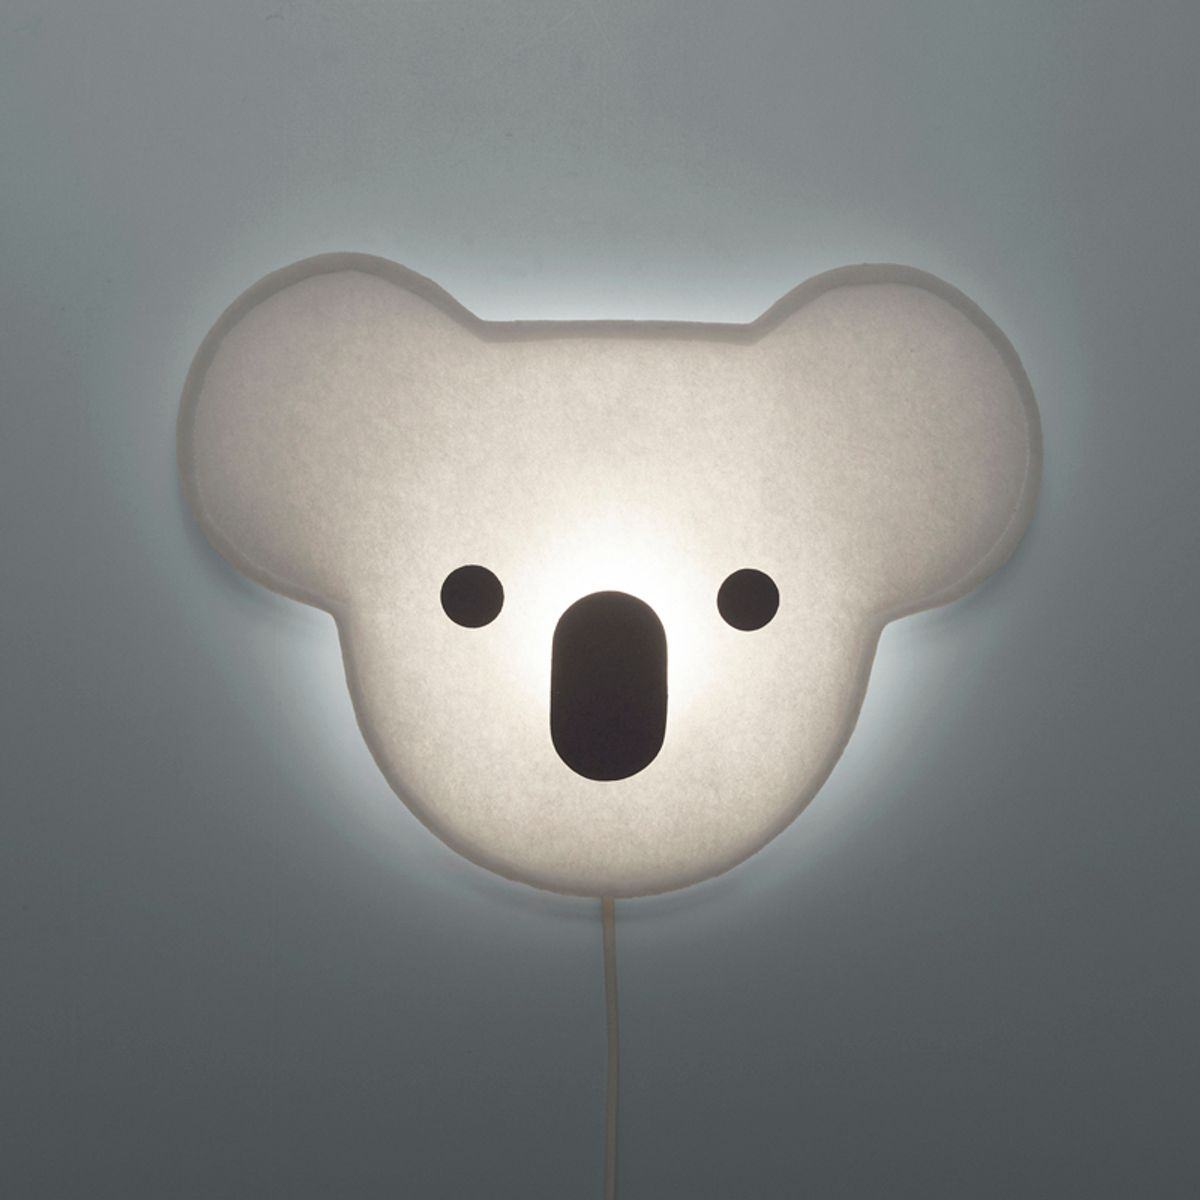 wandlampe koala mit kabel und stecker von buokids. Black Bedroom Furniture Sets. Home Design Ideas